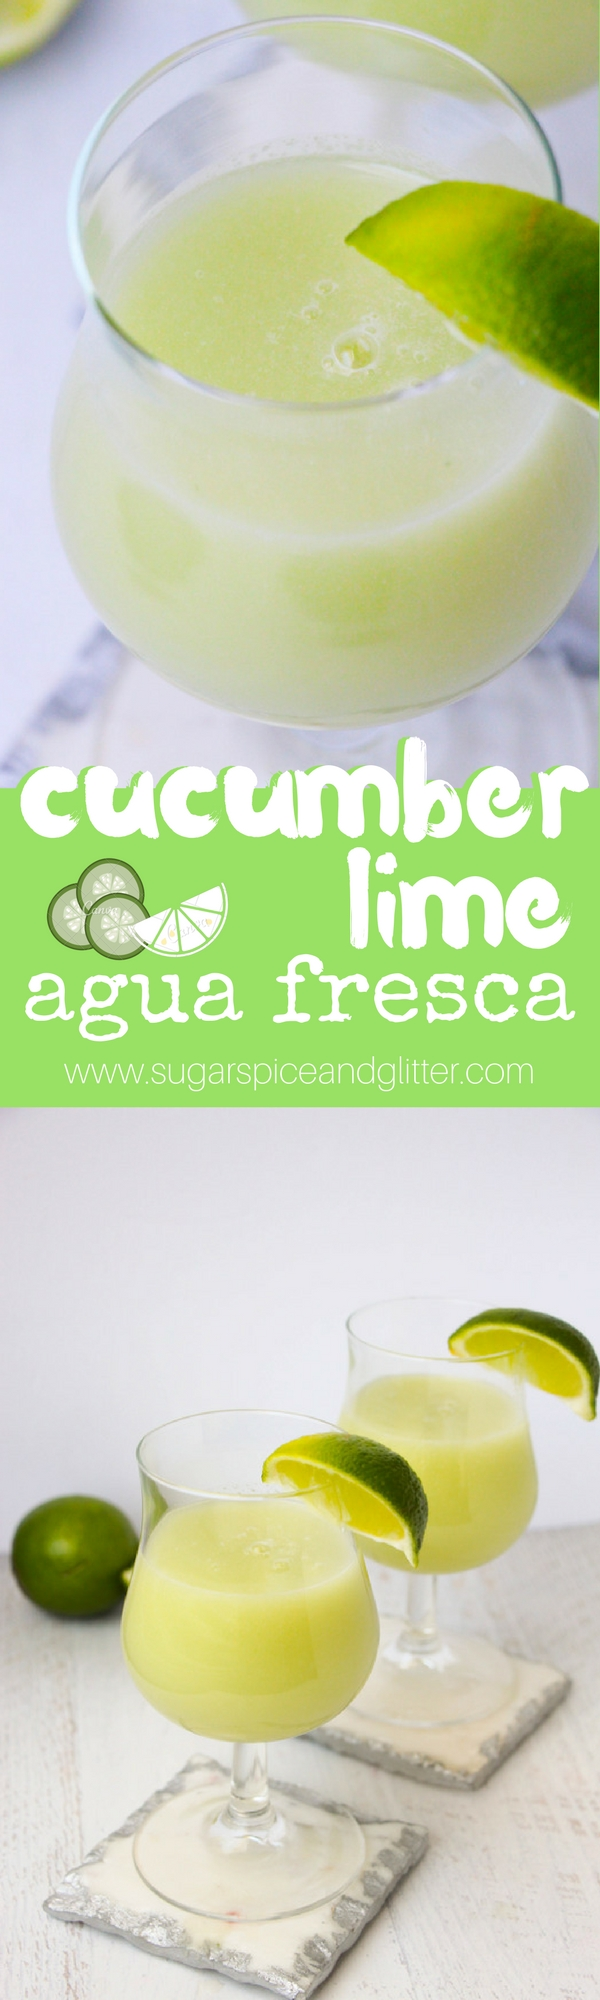 Cucumber spa water taken up a notch! This cucumber lime agua fresca is a refreshing summer drink with a hint of mint